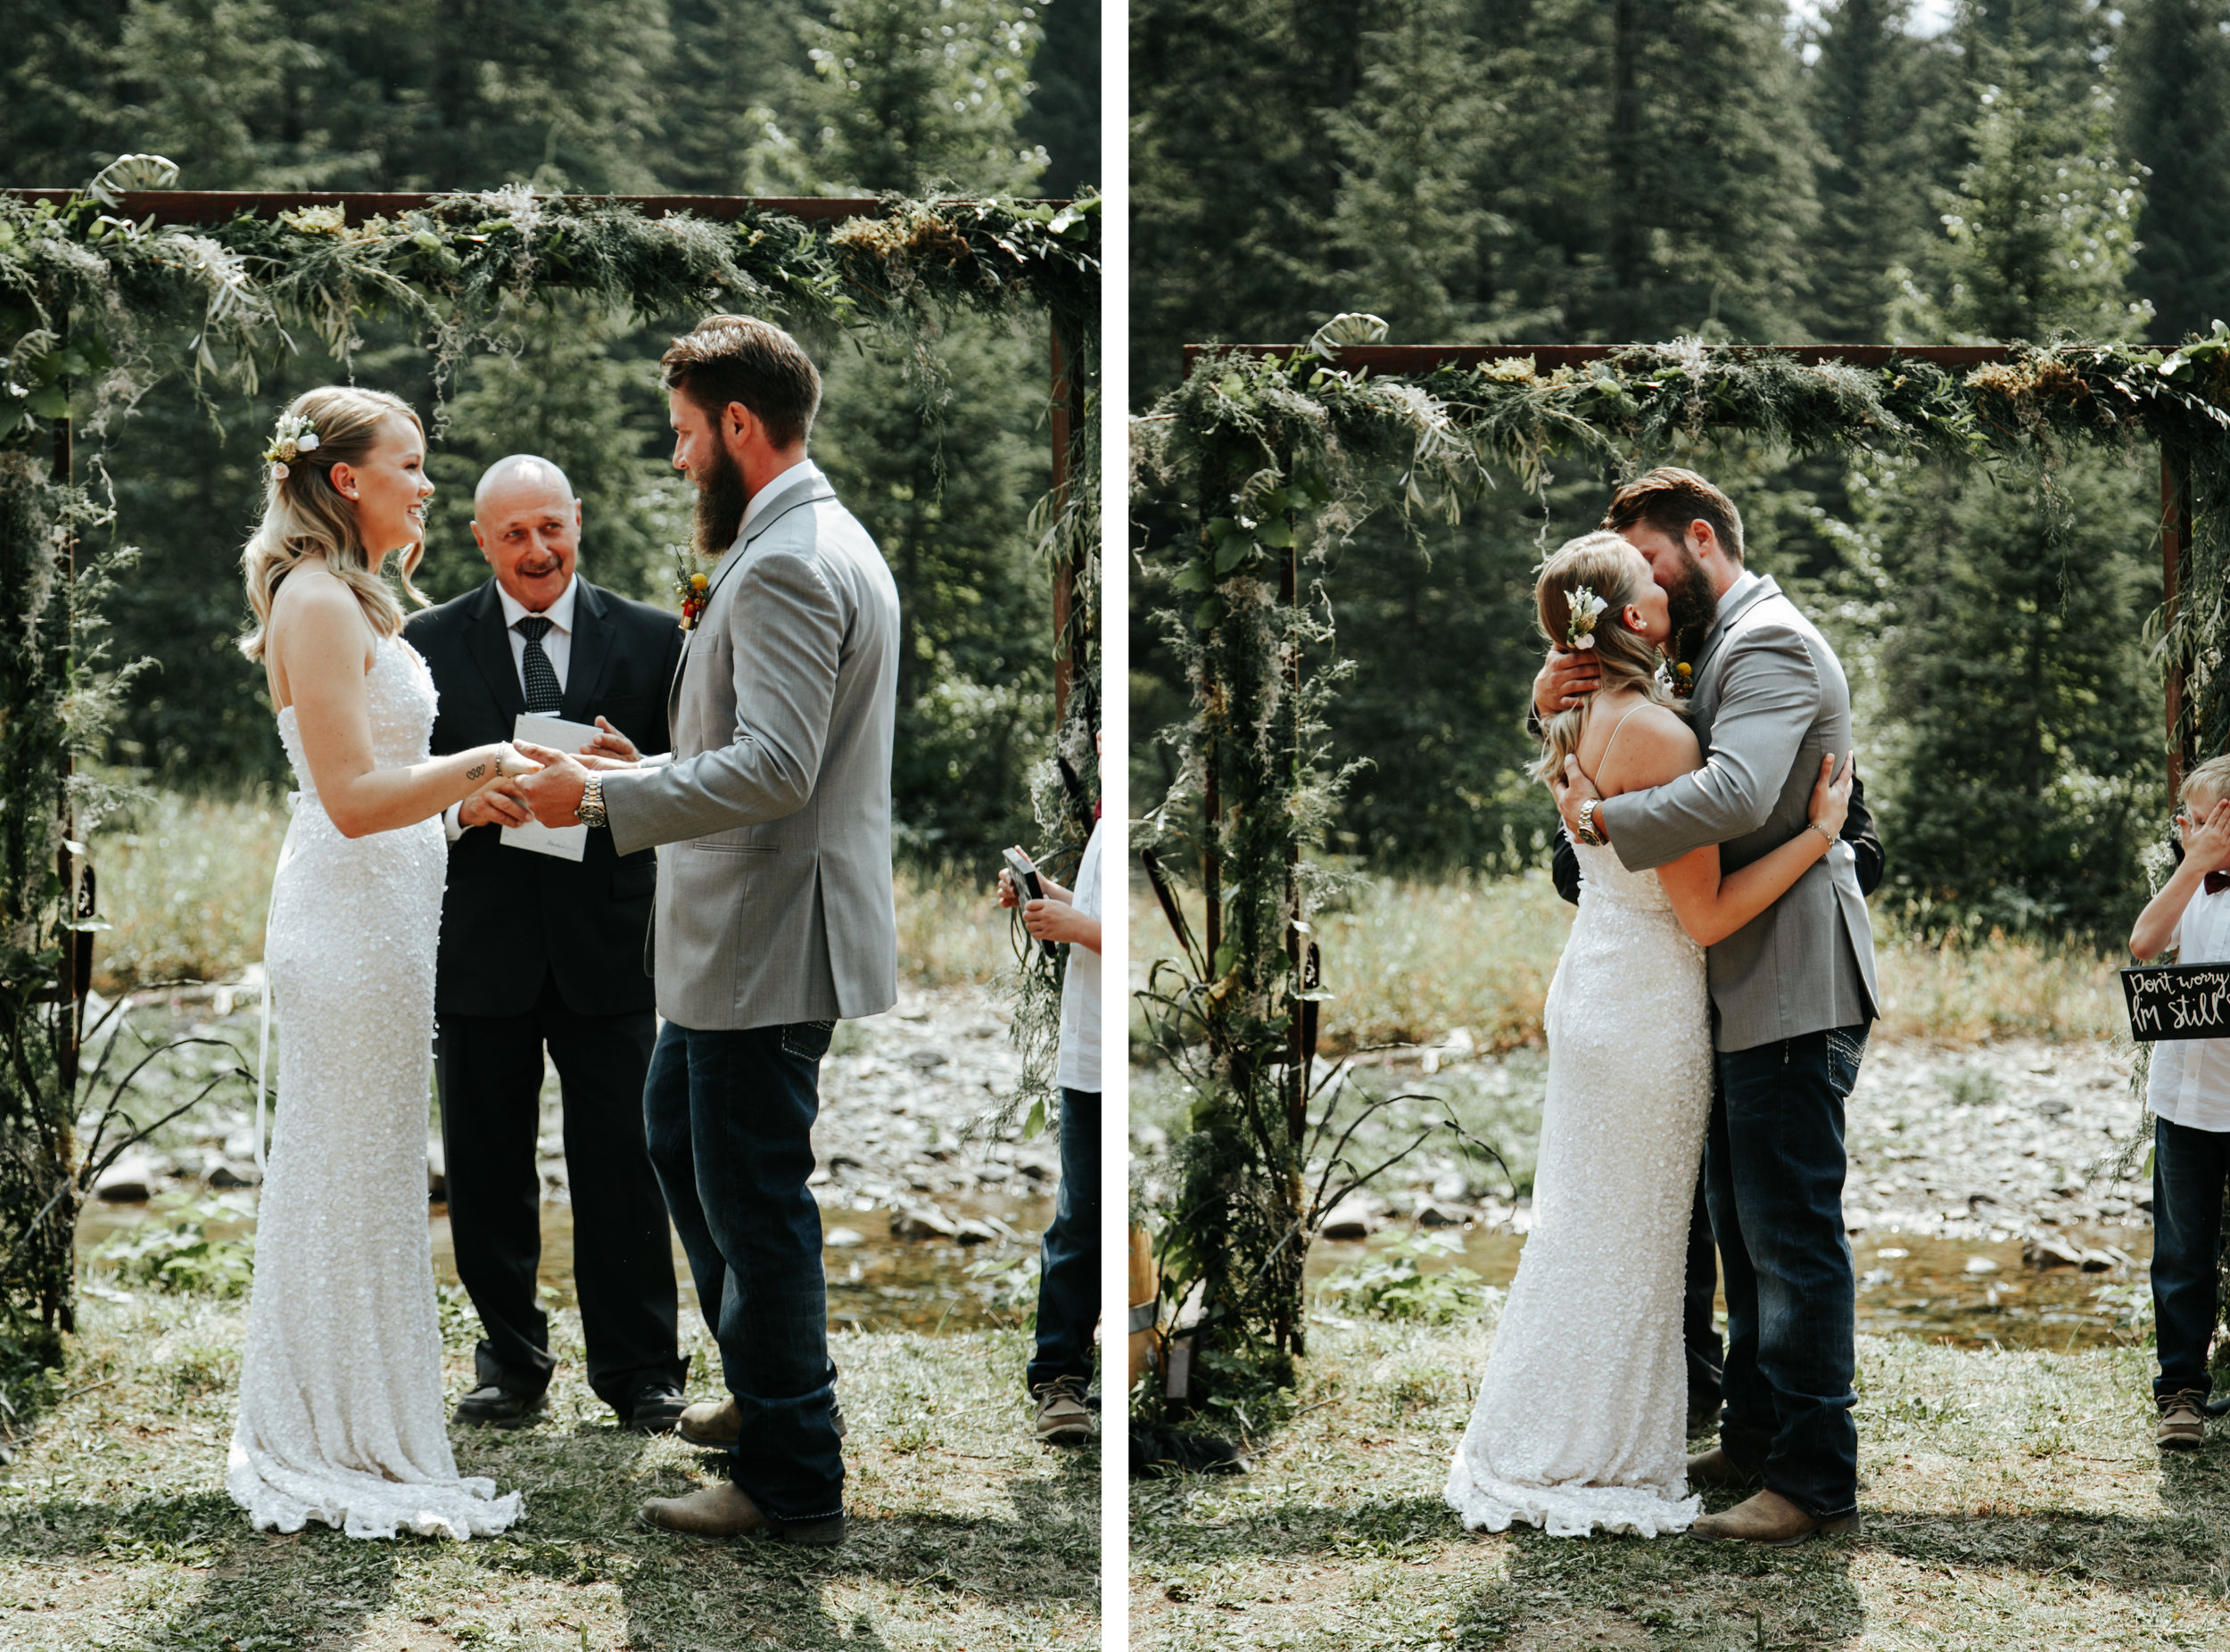 castle-mountain-wedding-photographer-love-and-be-loved-photography-lethbridge-pincher-creek-crowsnest-pass-yannick-rylee-photo-image-picture-78.jpg